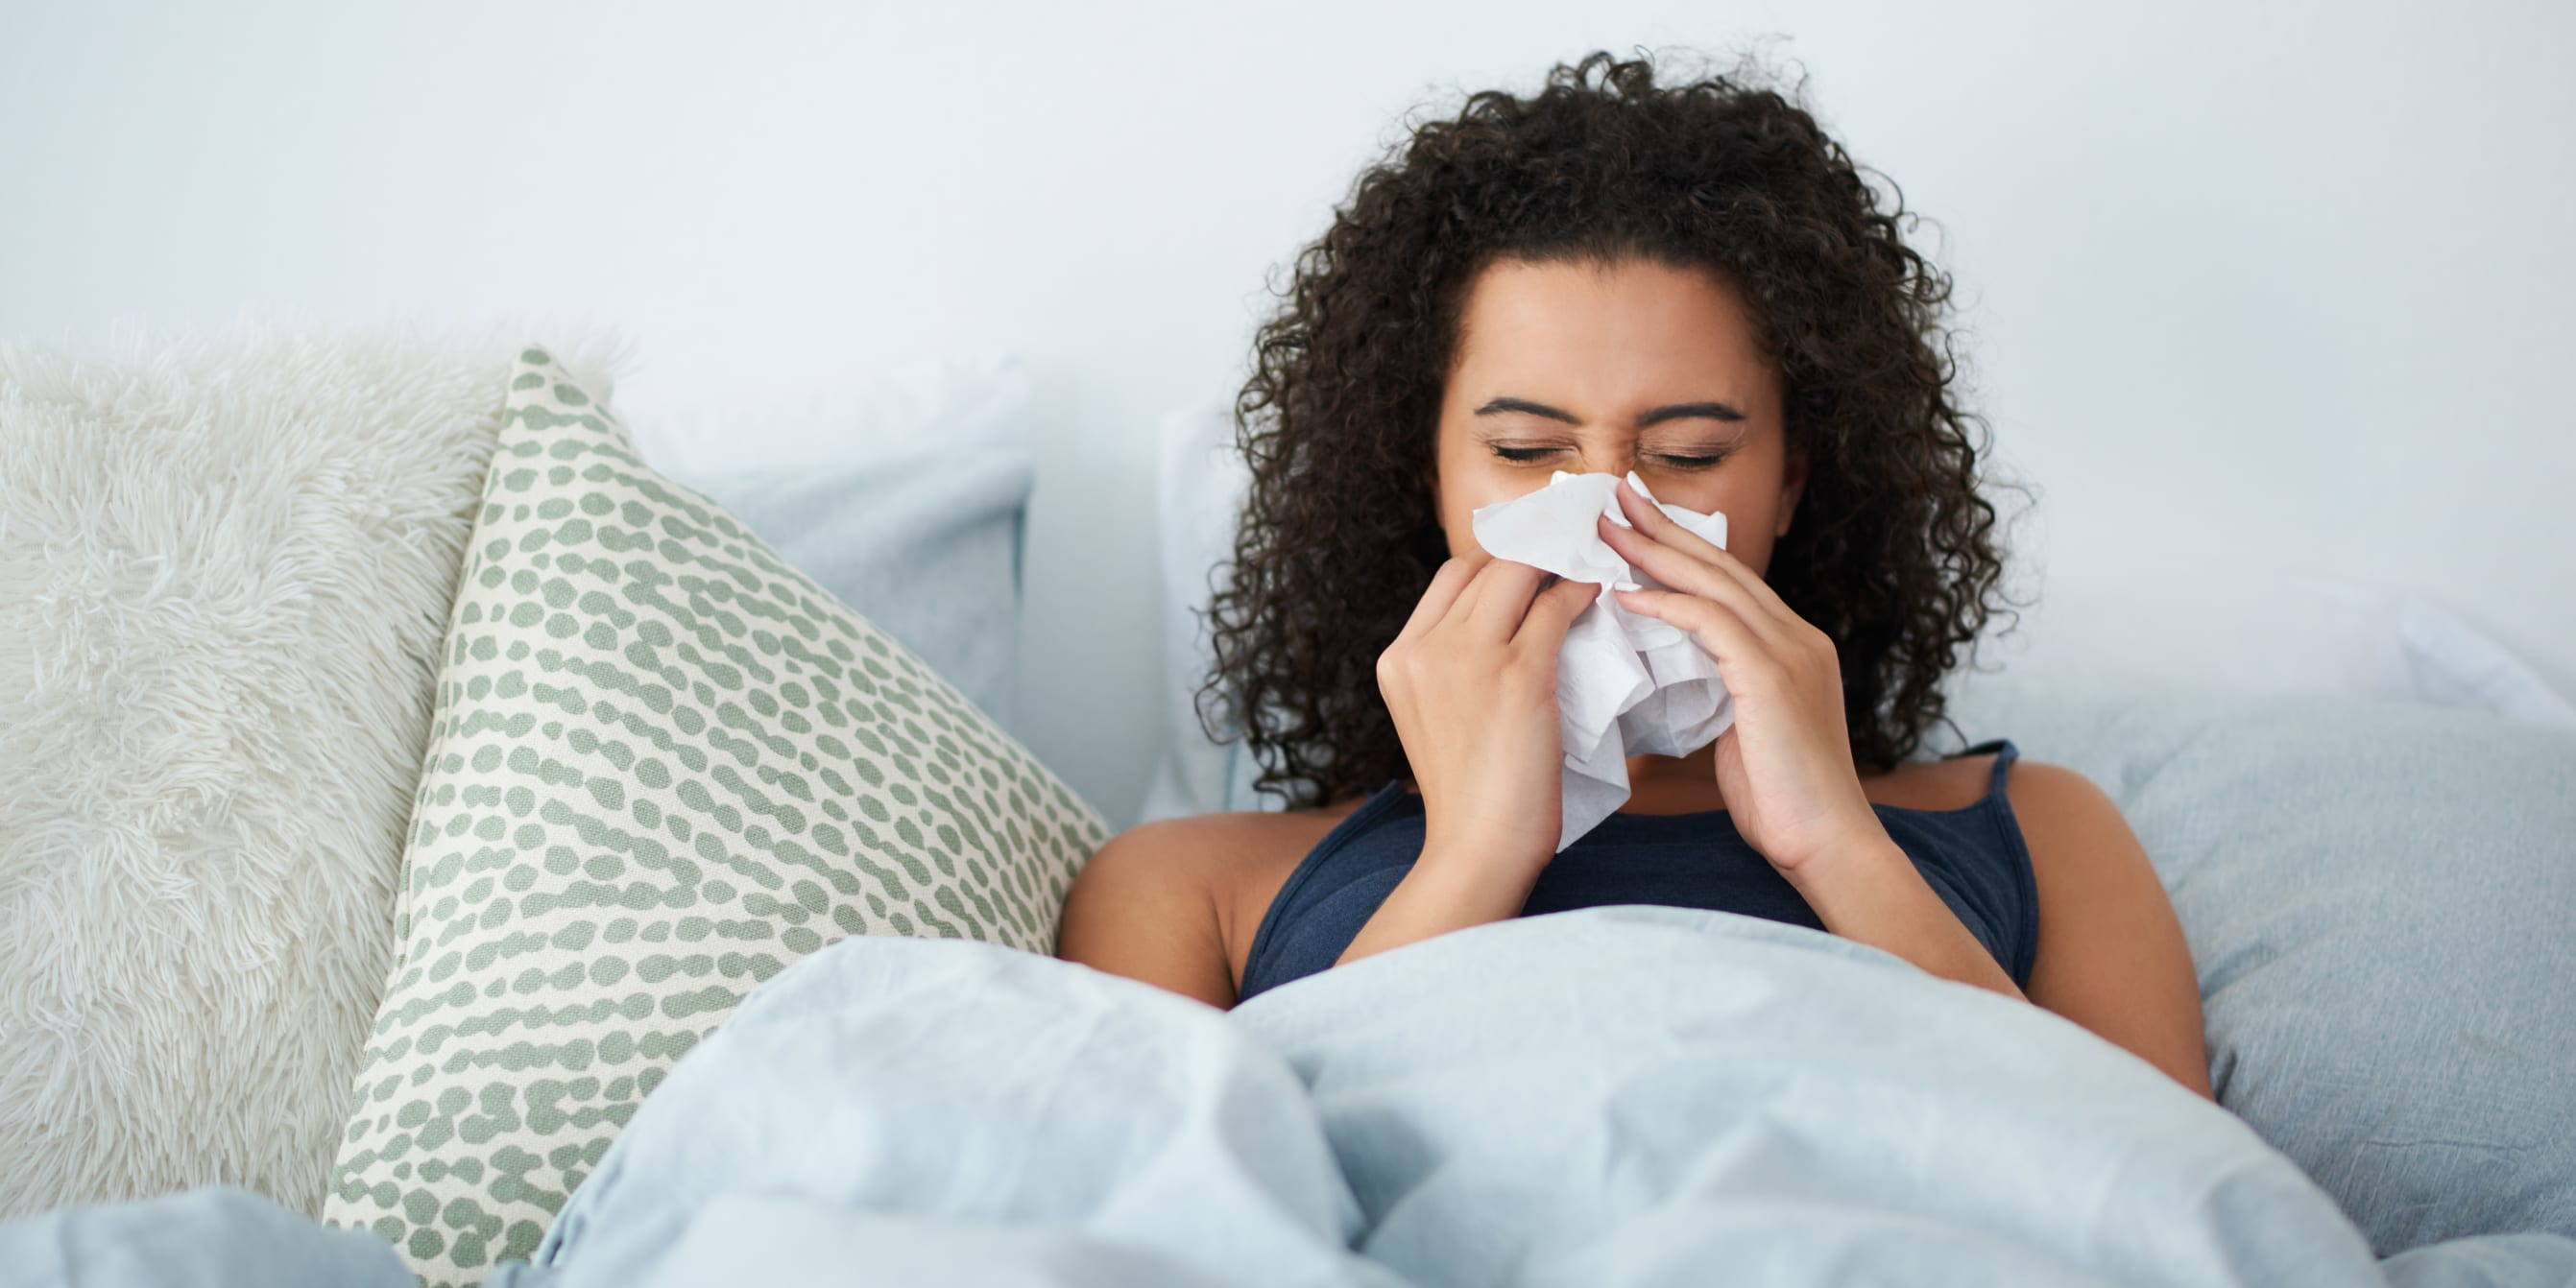 Virus or Bacteria: What has made you sick?